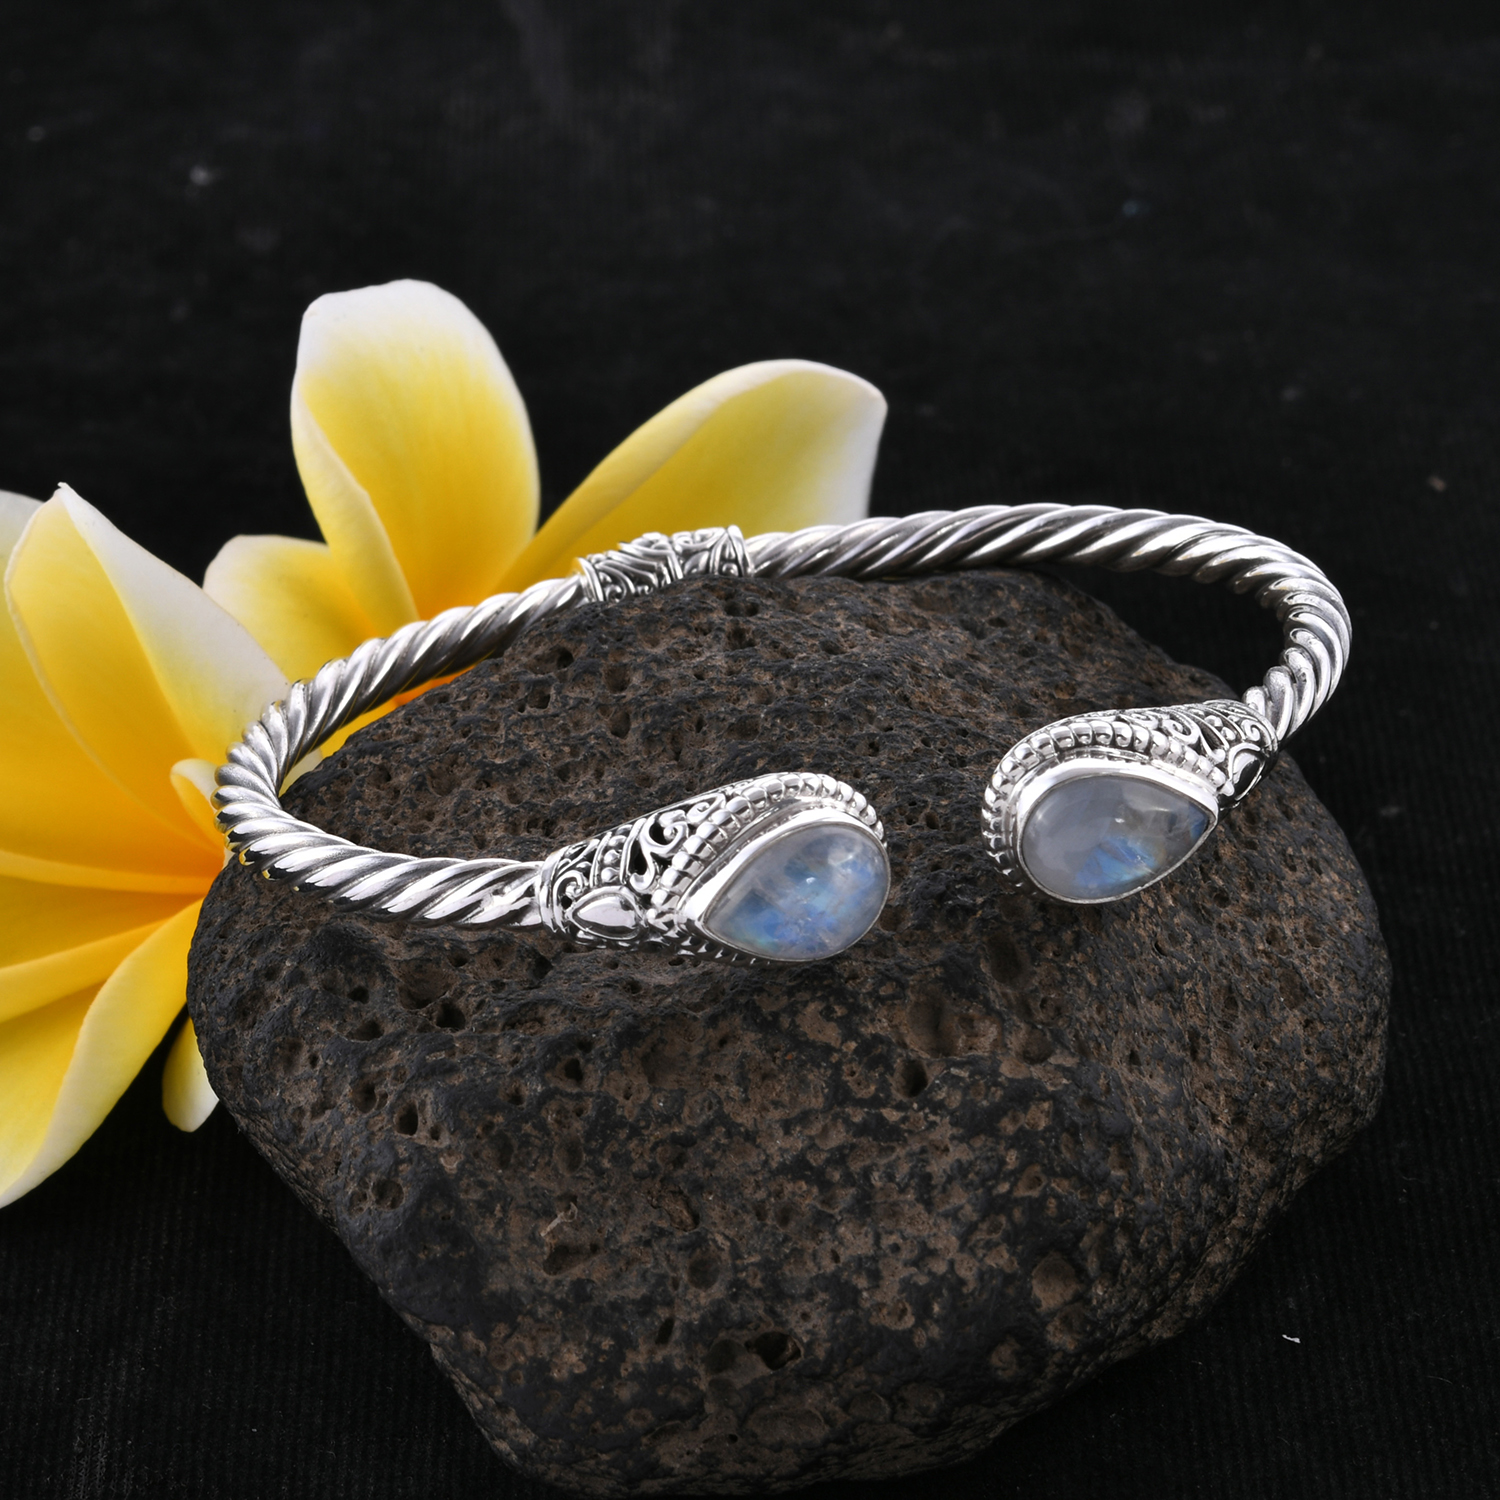 Moonstone bangle perched on lava rock.